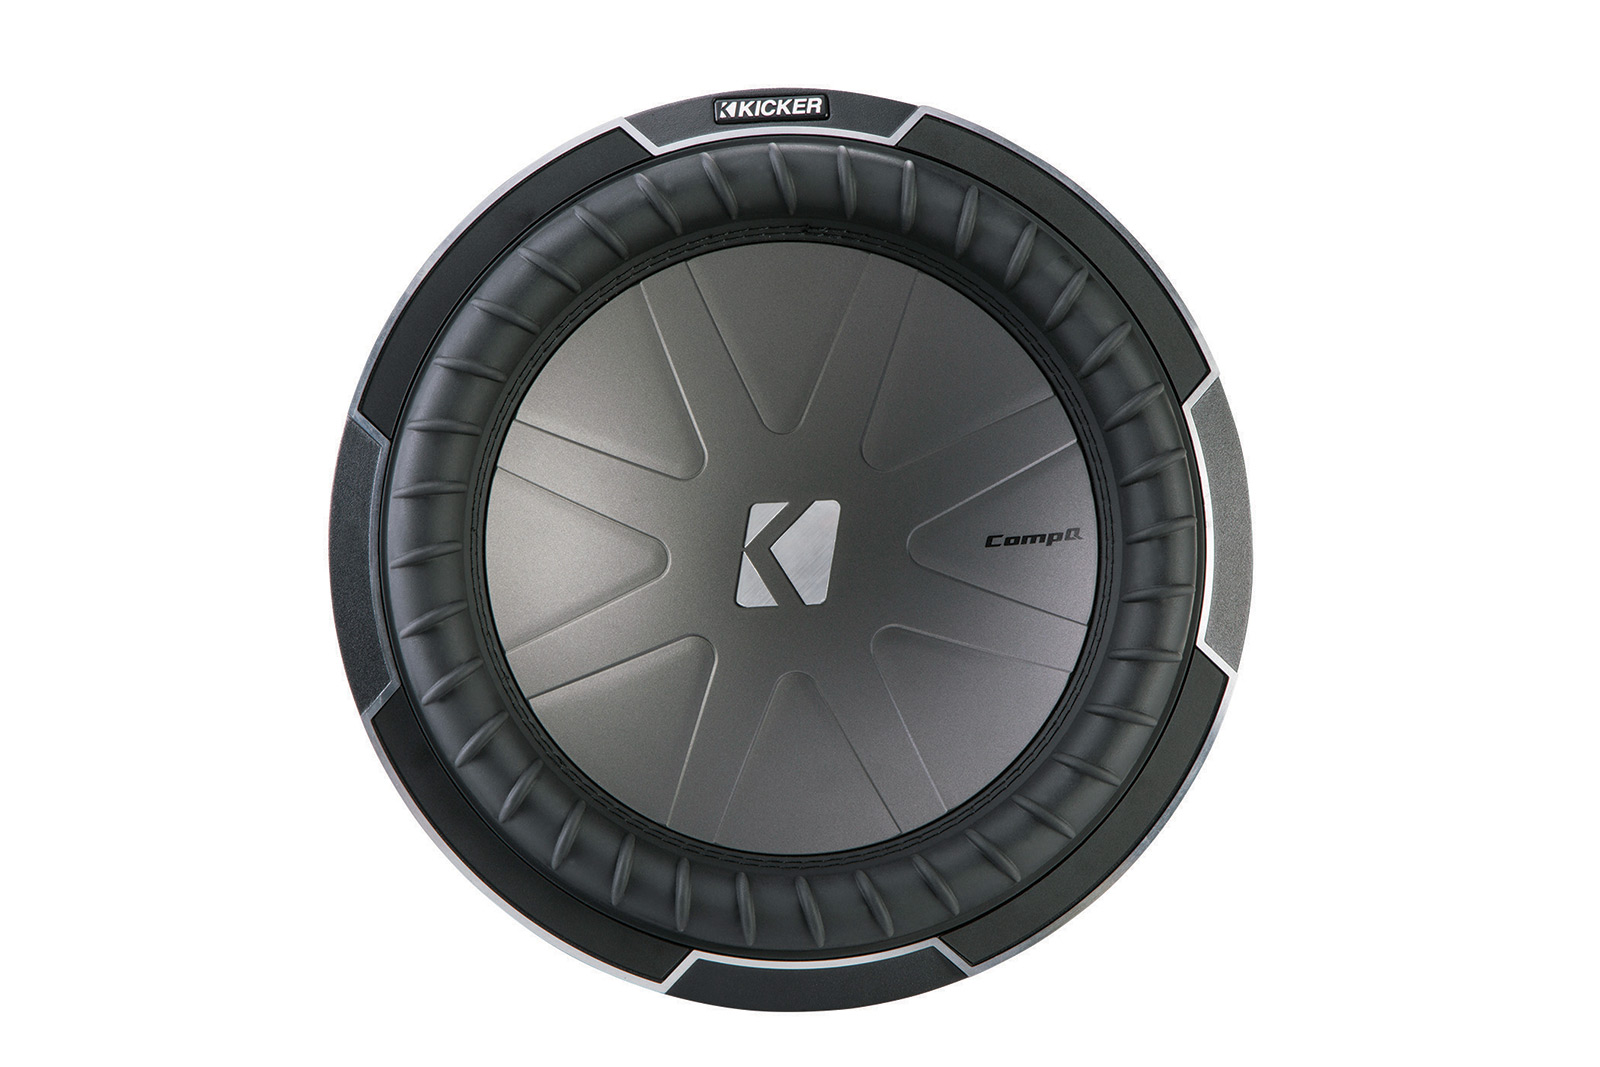 PASMAG Kicker Comp Q CWQ12 Subwoofer Review 1